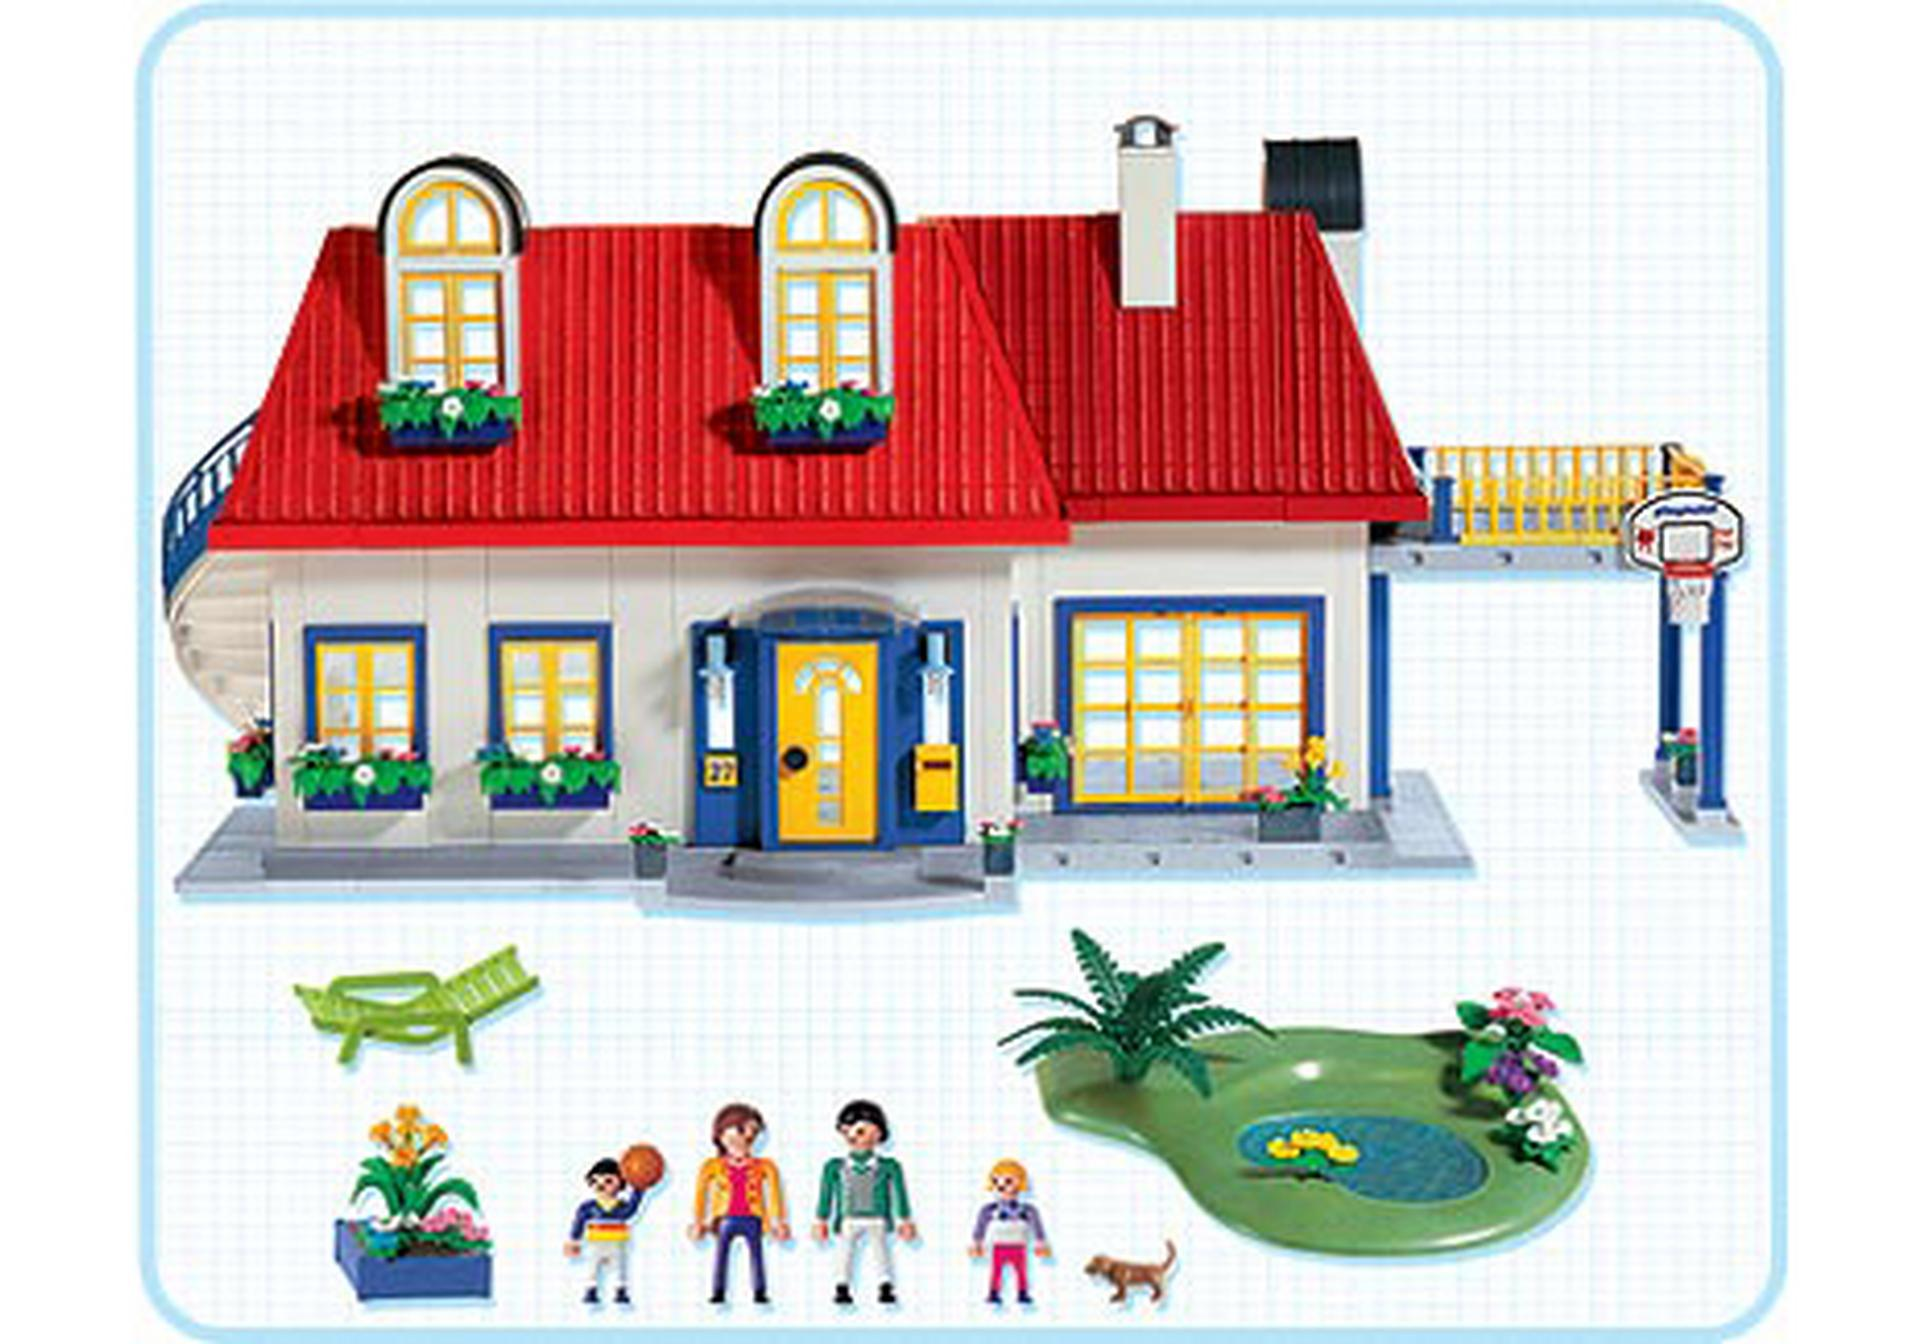 Maison contemporaine 3965 a playmobil france for Agrandissement maison moderne playmobil